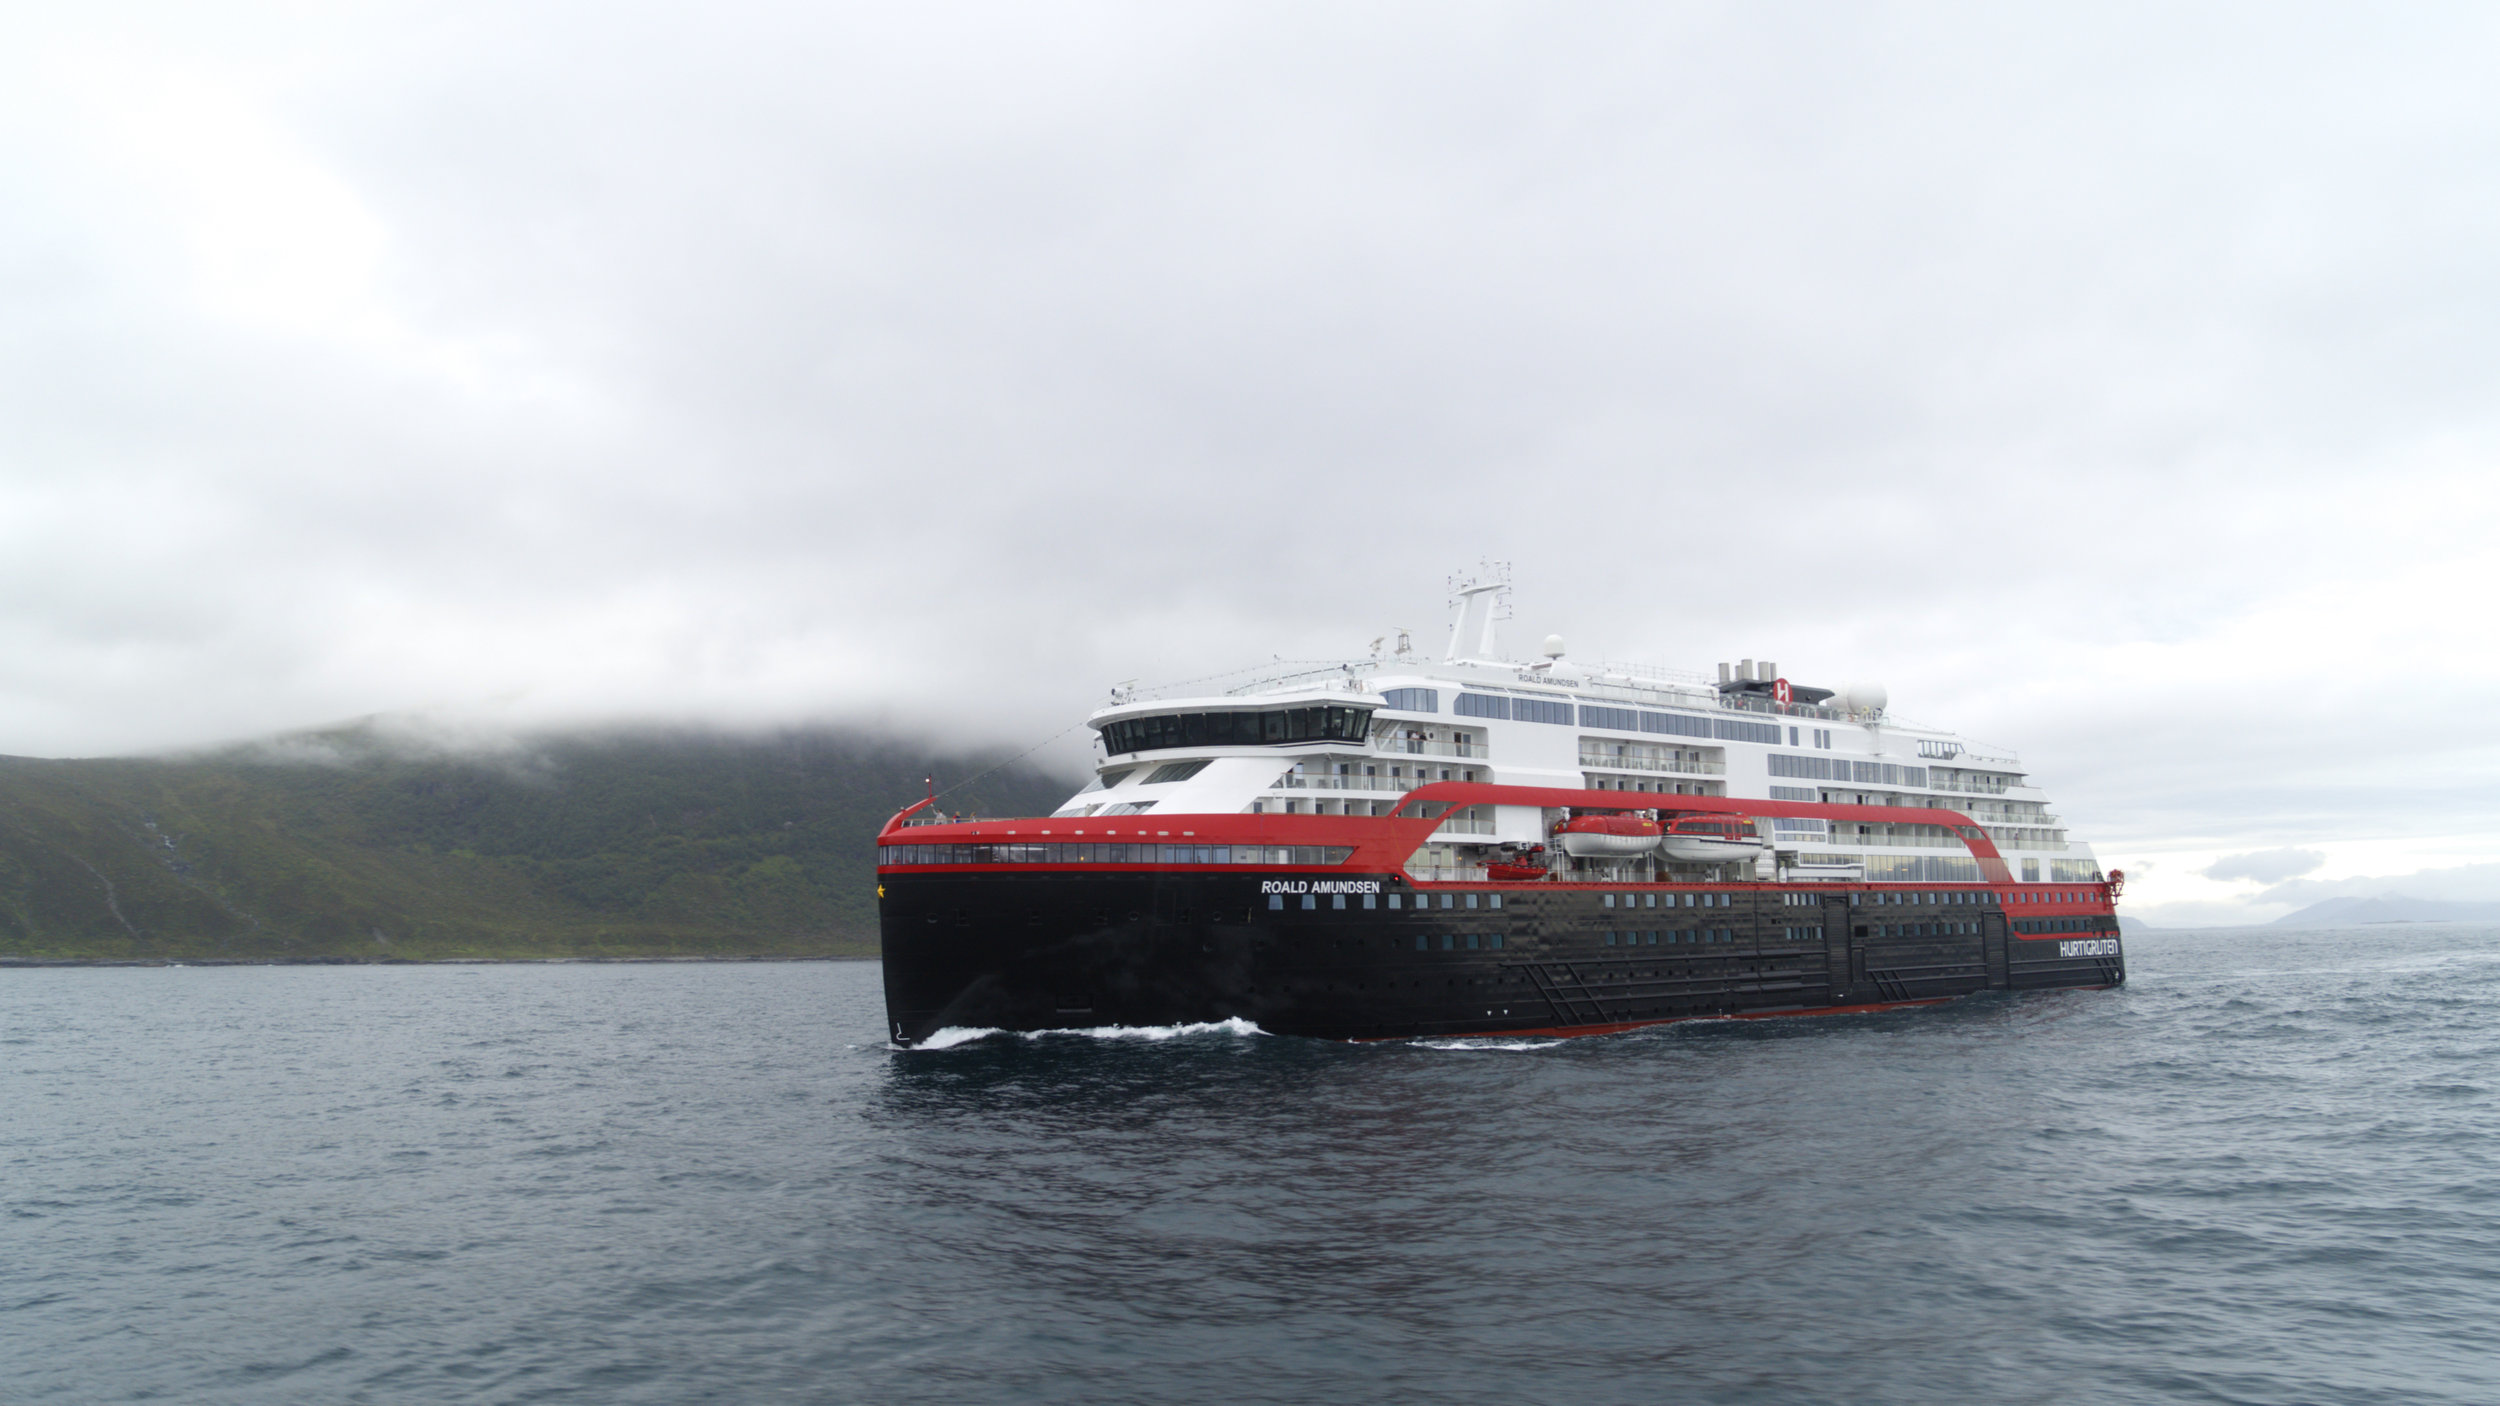 Hurtigruten MS Roald Amundsen 005 - hybrid powered - photo Hurtigruten.jpg